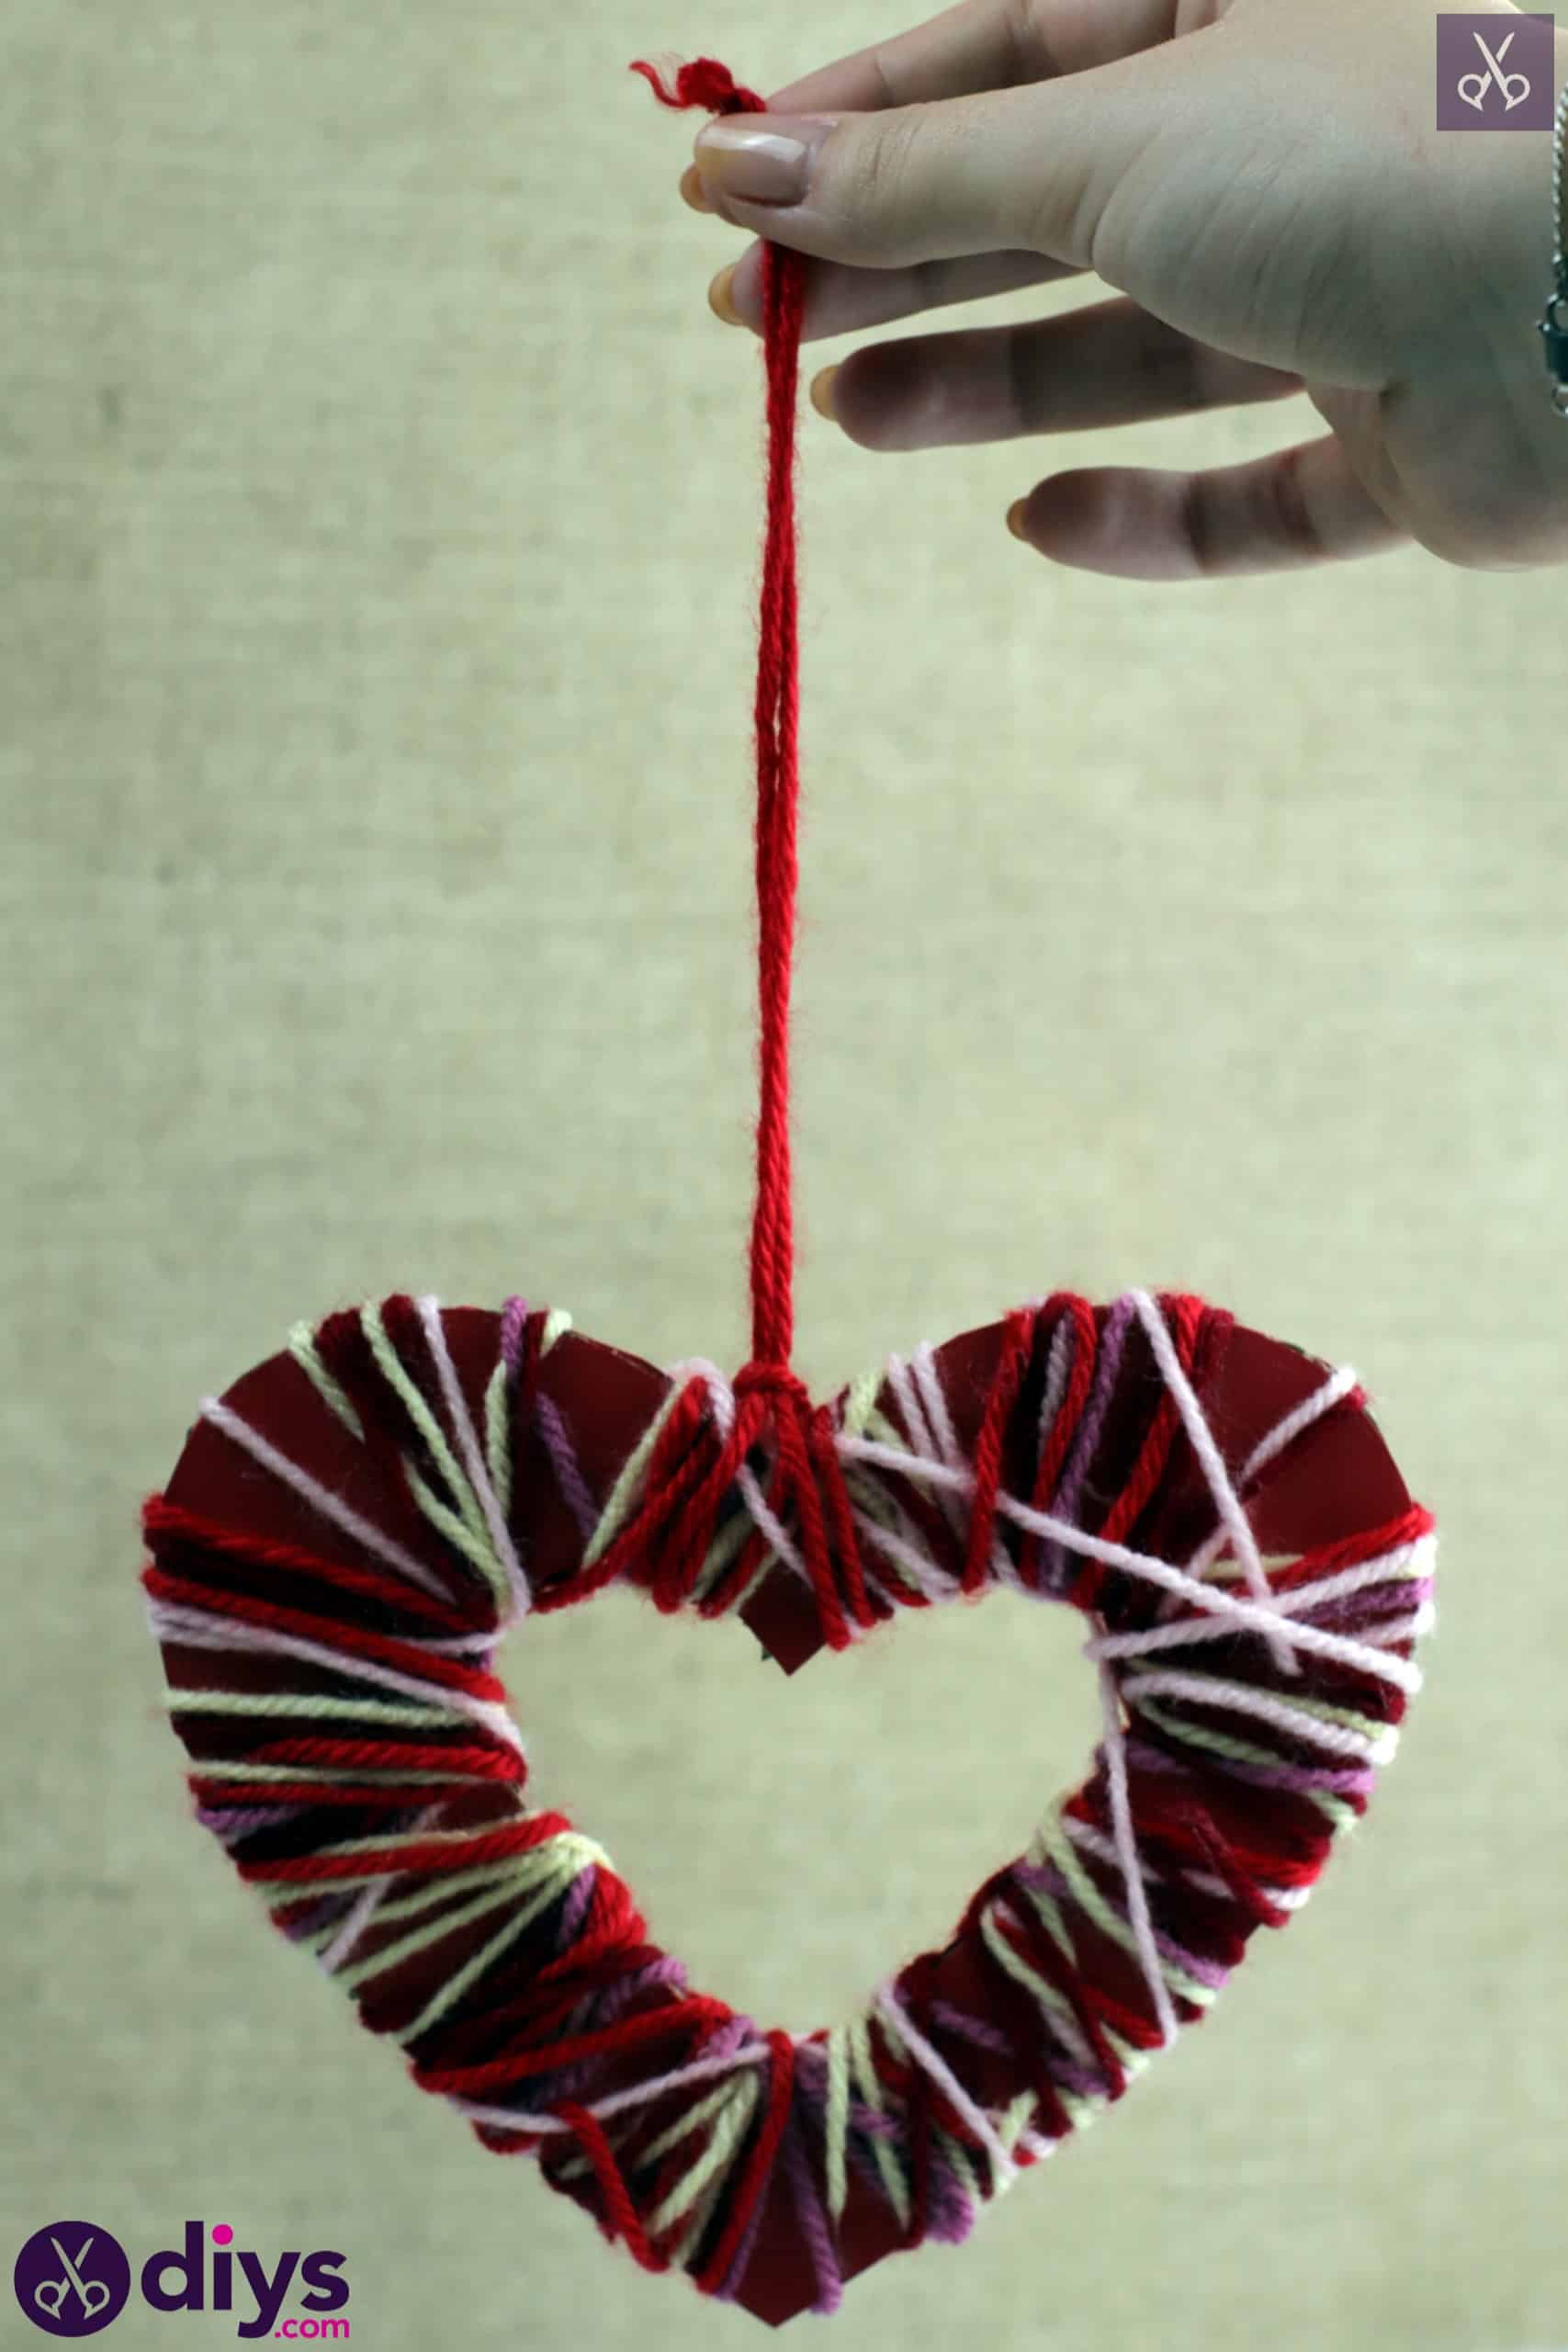 Diy yarn wrapped paper heart step 7c